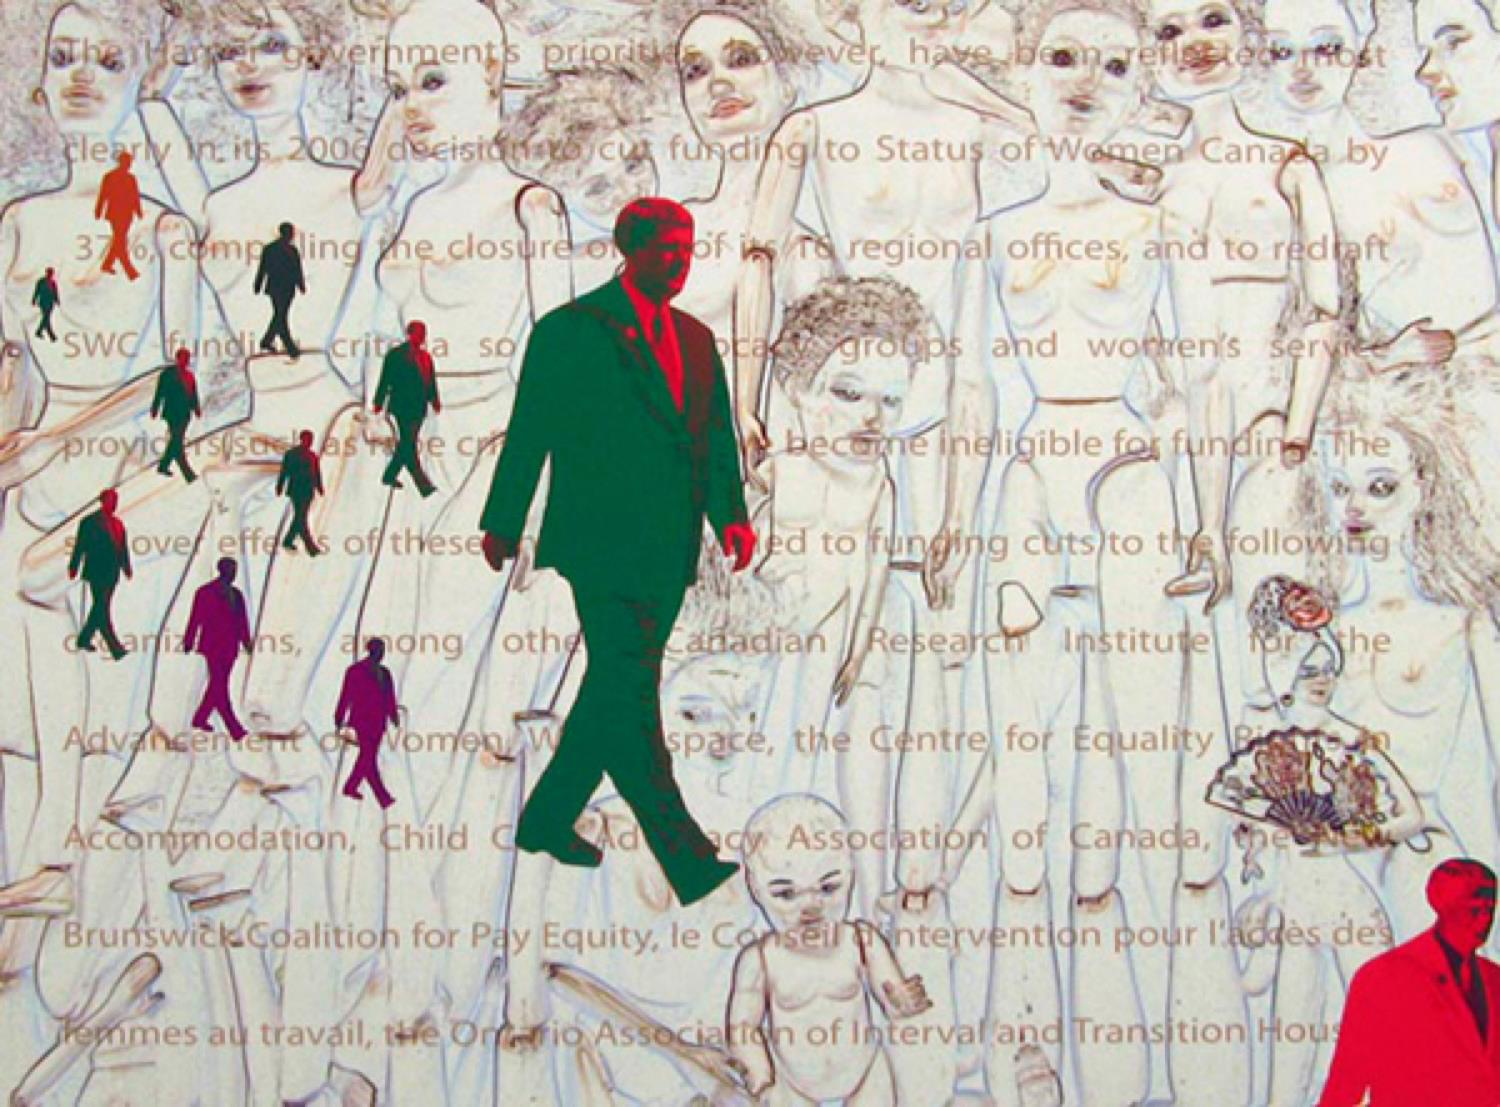 GABRIELLE DE MONTMOLLIN,   MEAN MAN WALKING ALL OVER THOSE WHO ARE WEAKER THAN HIM , 2012.  Mixed media on paper, 16 x 23 inches.